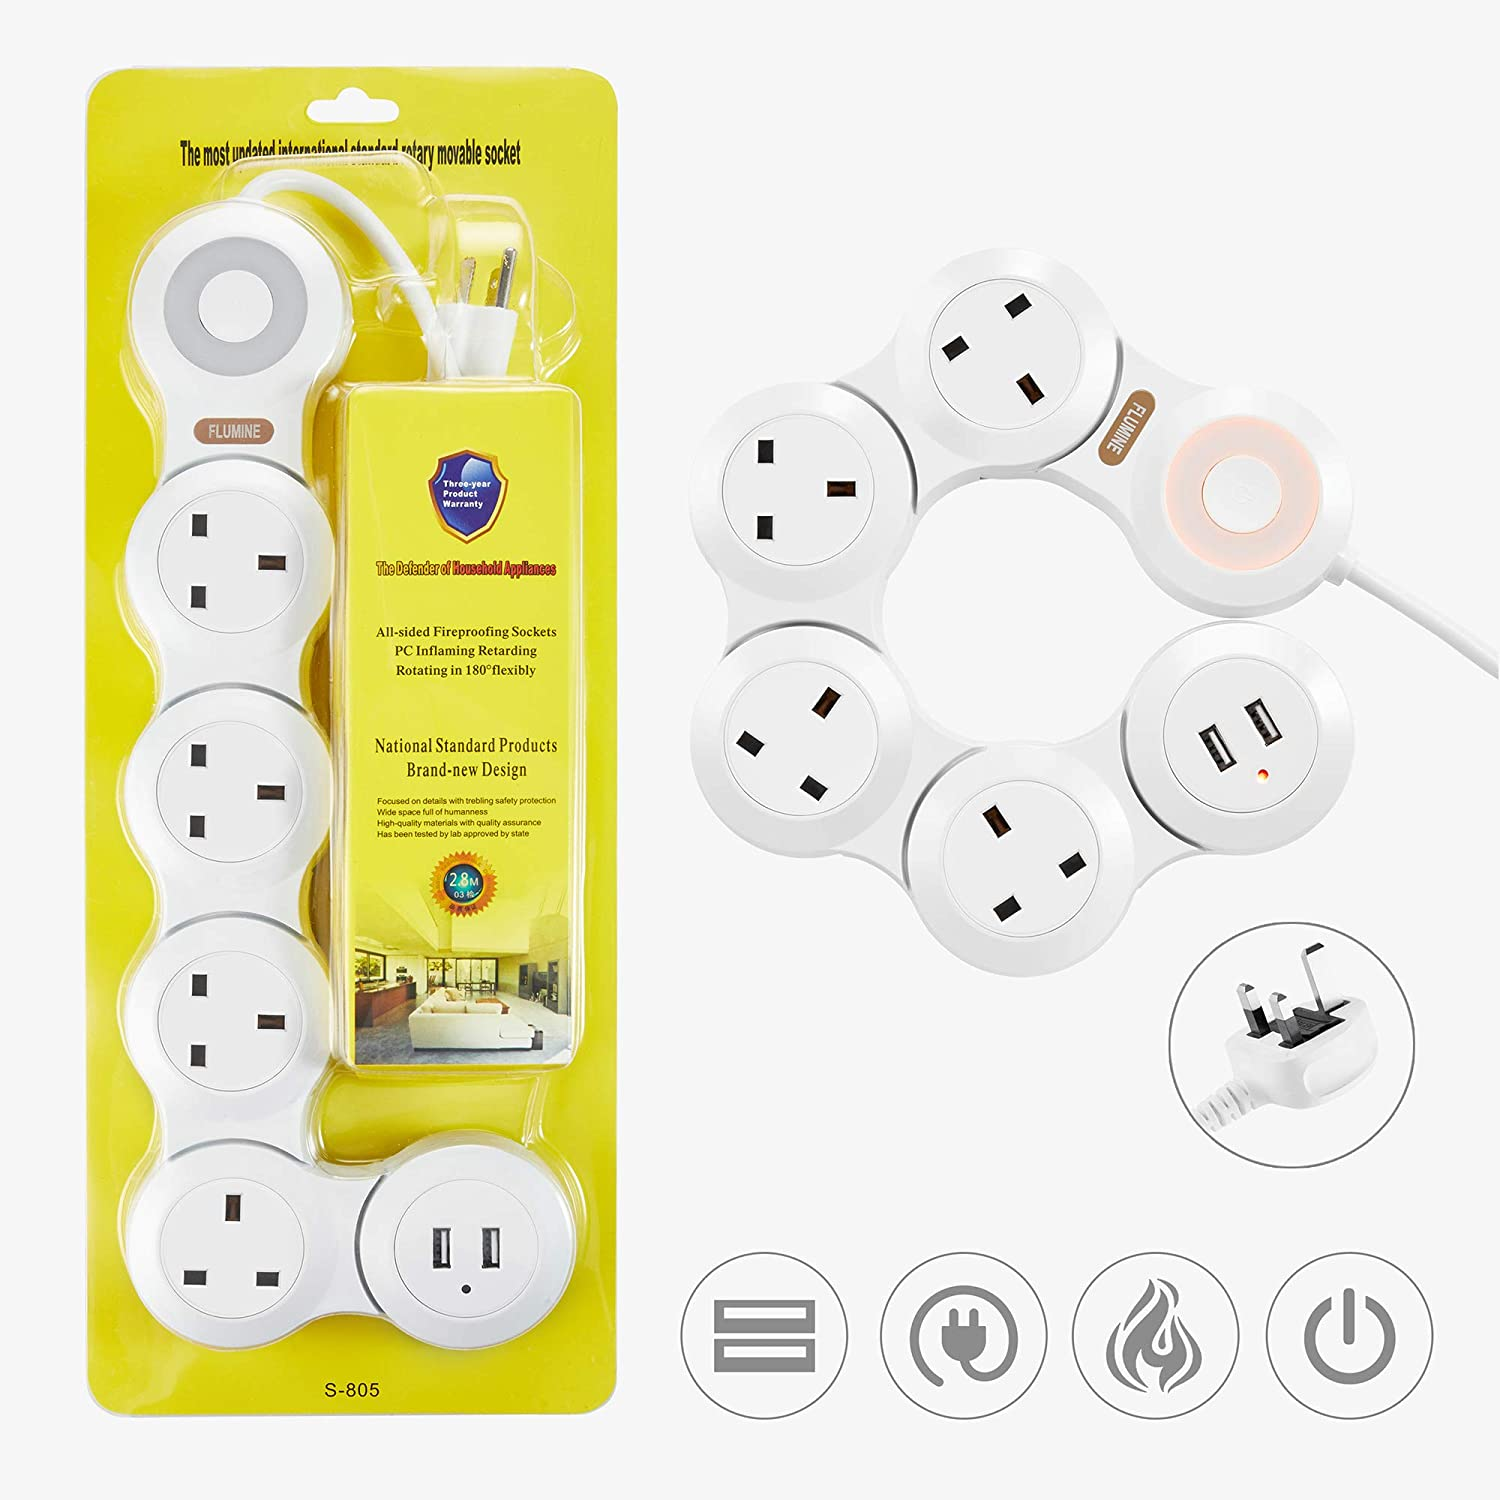 1.8m - Black Flexible Surge Protector Plug 4 Way Outlets with 2 USB Port for Home Power Strip Office and Travel